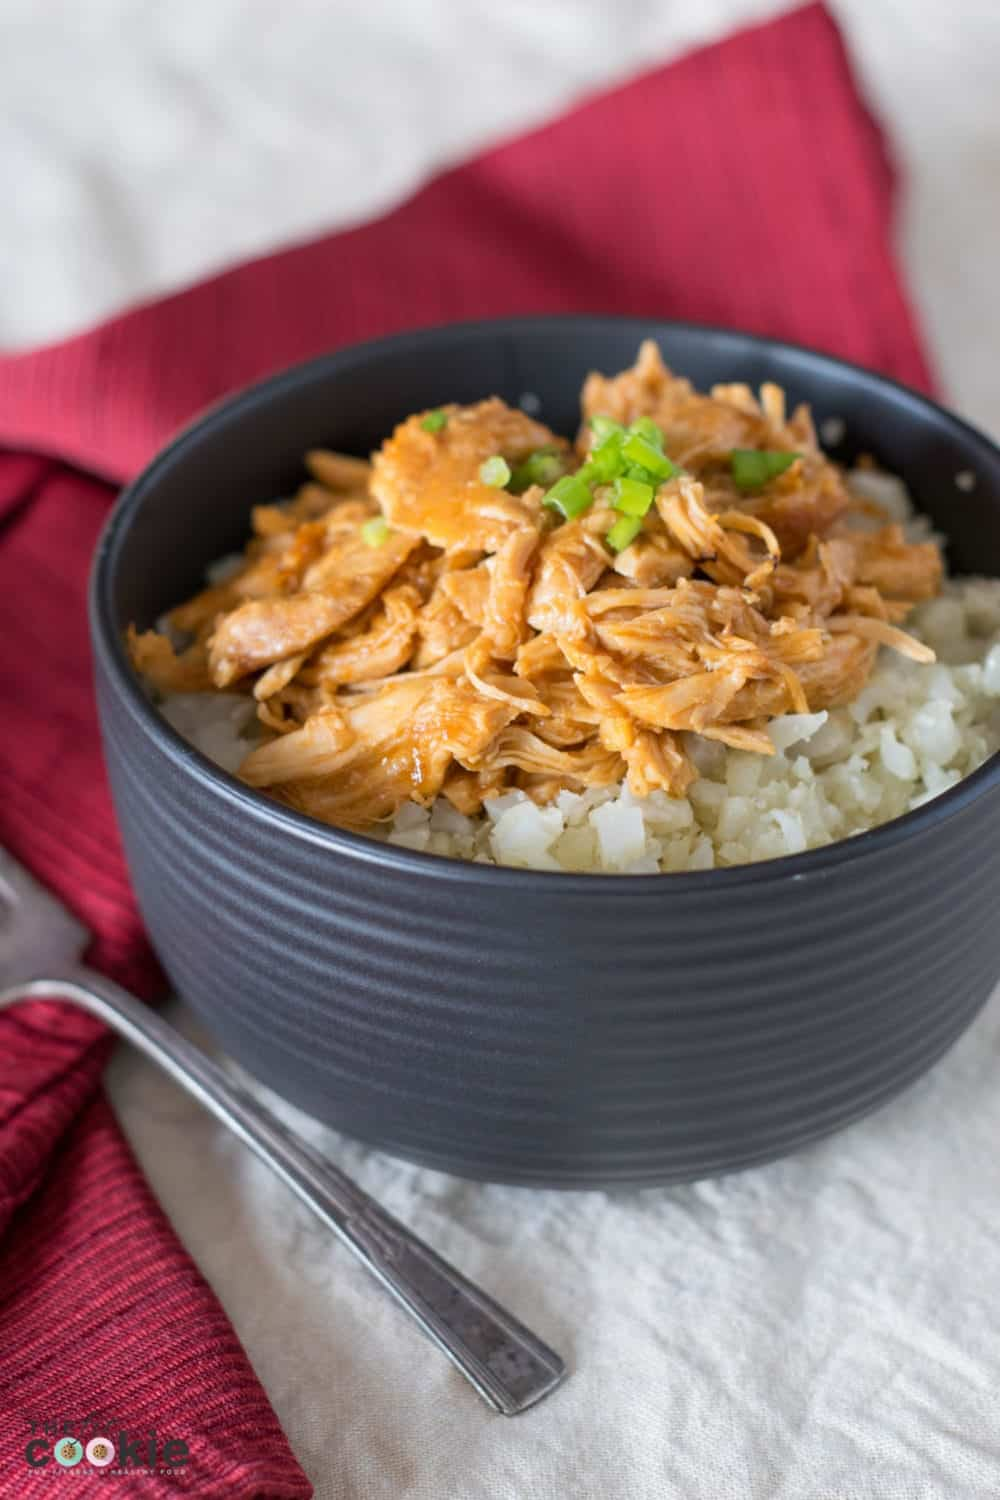 If you're looking for an easy and allergy-friendly weeknight meal, this Slow Cooker Asian Chicken is for you! It's full of fresh ginger and garlic flavor, plus it's gluten, peanut, and soy free